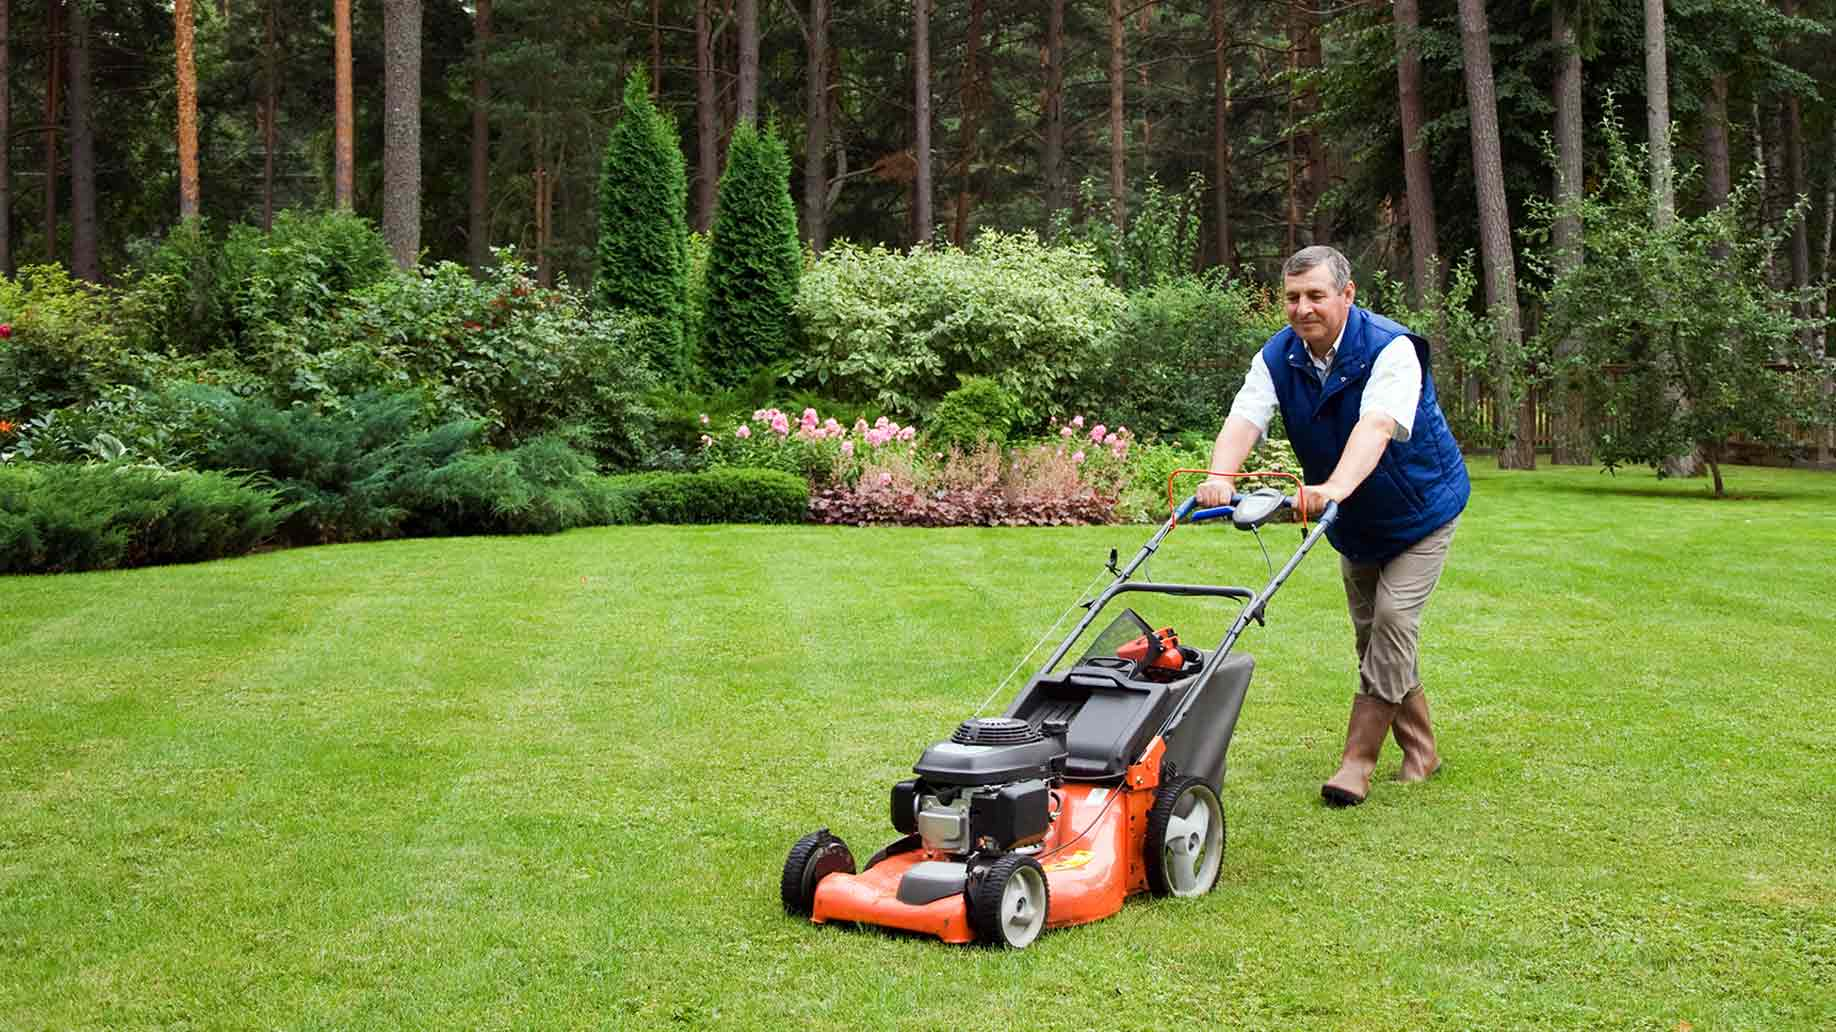 senior man mowing lawn